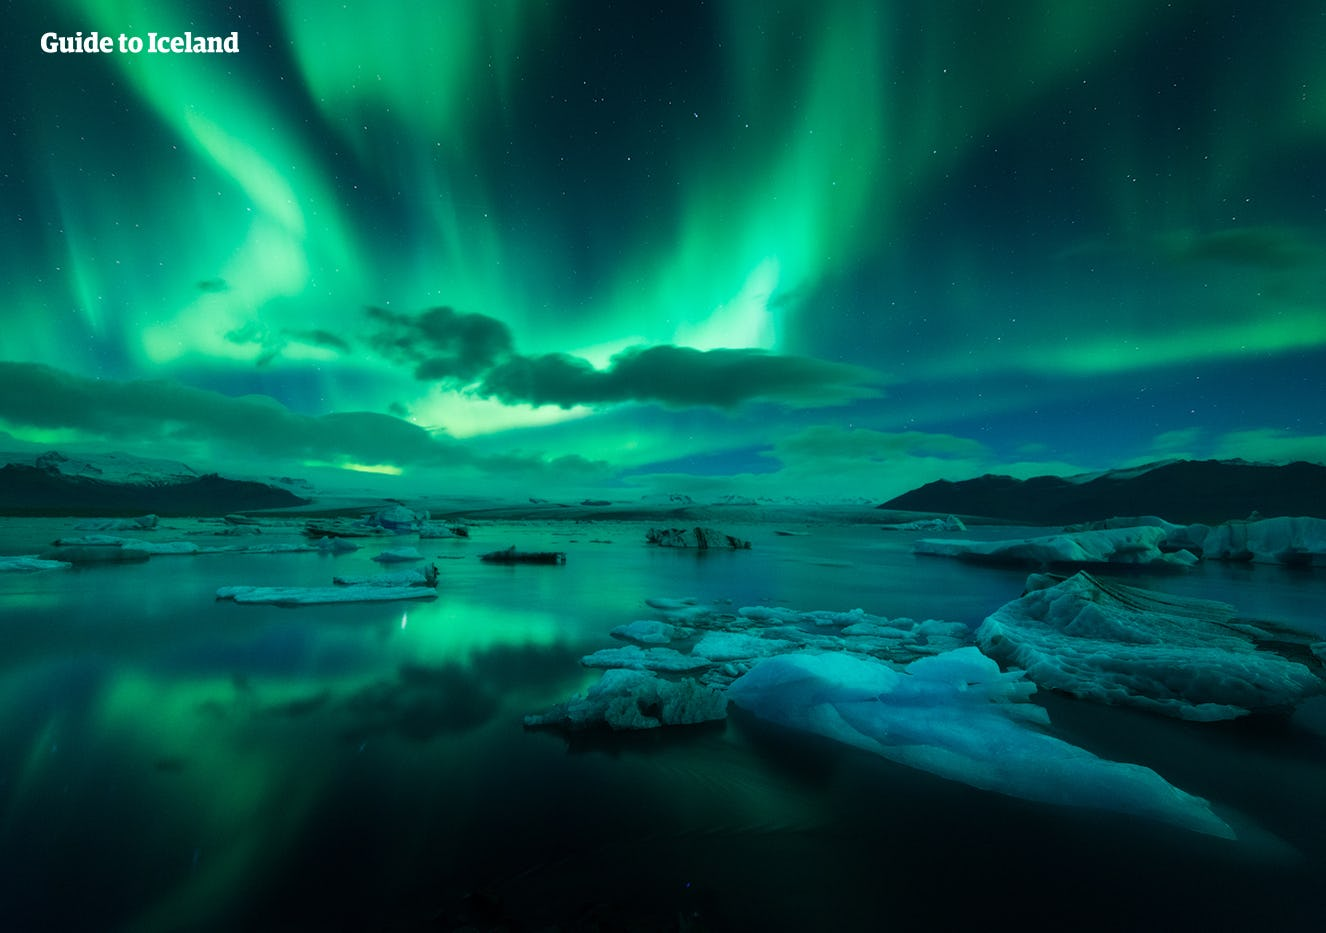 In winter, magnificent northern lights displays can sometimes be seen mirrored on the surface of Jökulsárlón glacier lagoon.